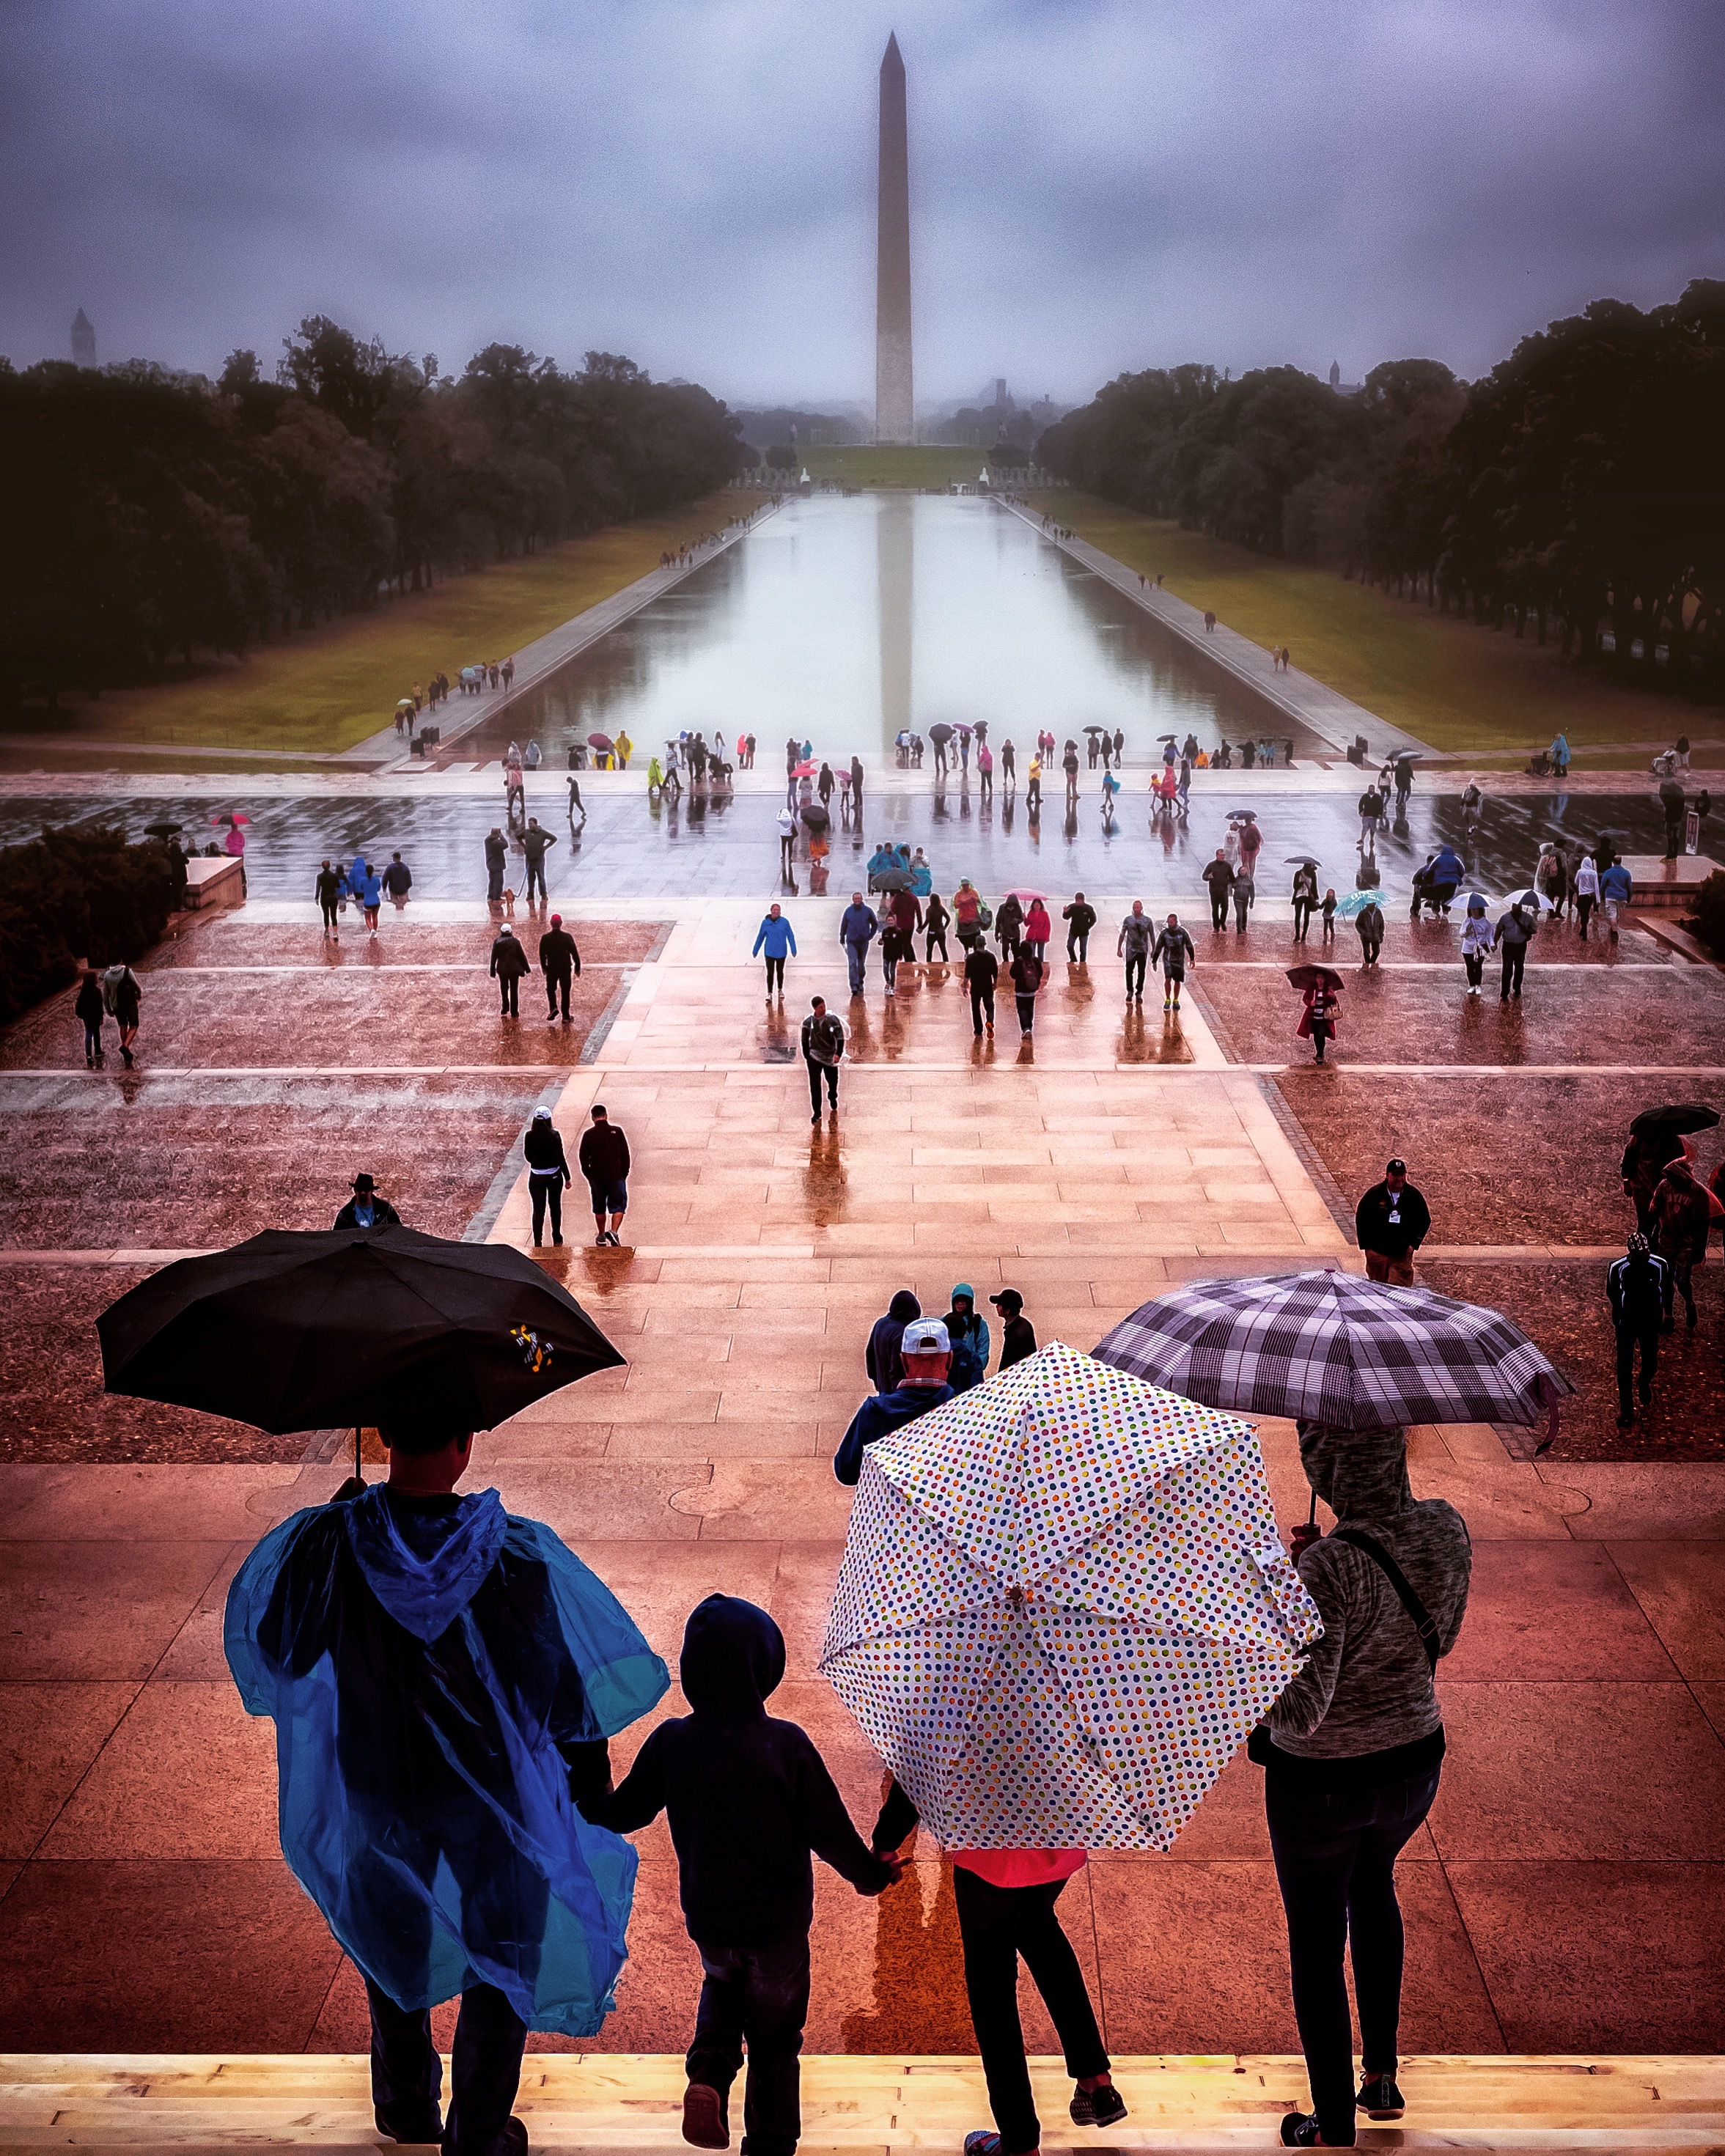 A family heading out into a sudden downpour along the steps of the Lincoln Memorial. Taken September, 2017. (Image: Adam Brockett)